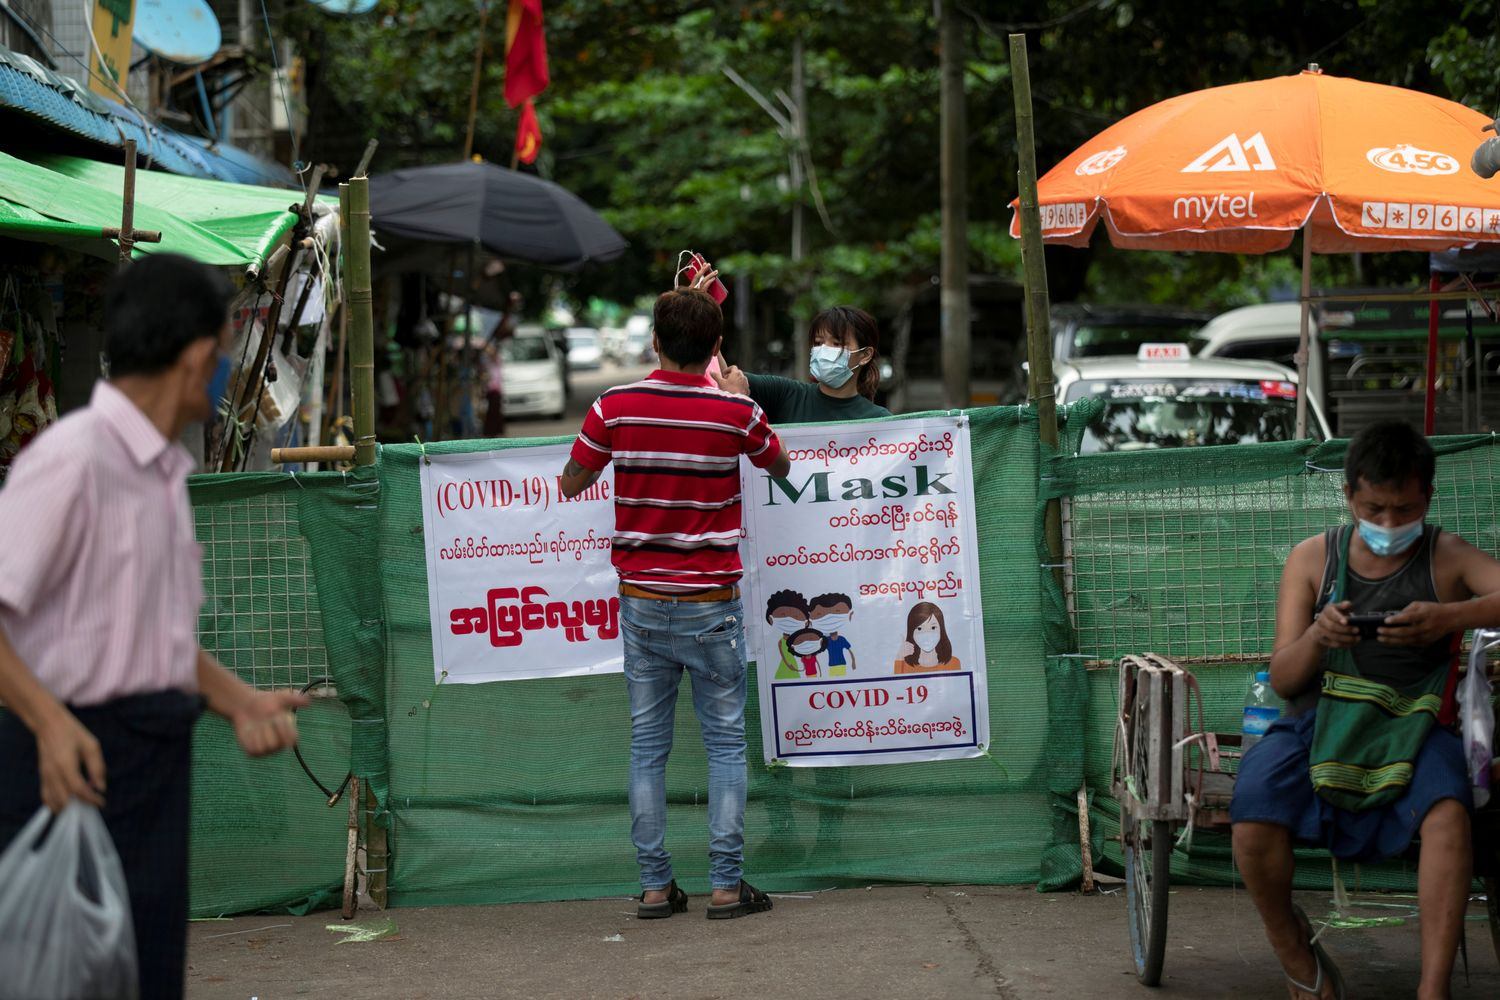 A woman passes a package to a man behind a makeshift barricade, blocking off a street to prevent the spread of Covid-19 in Yangon on Saturday. (Reuters photo)